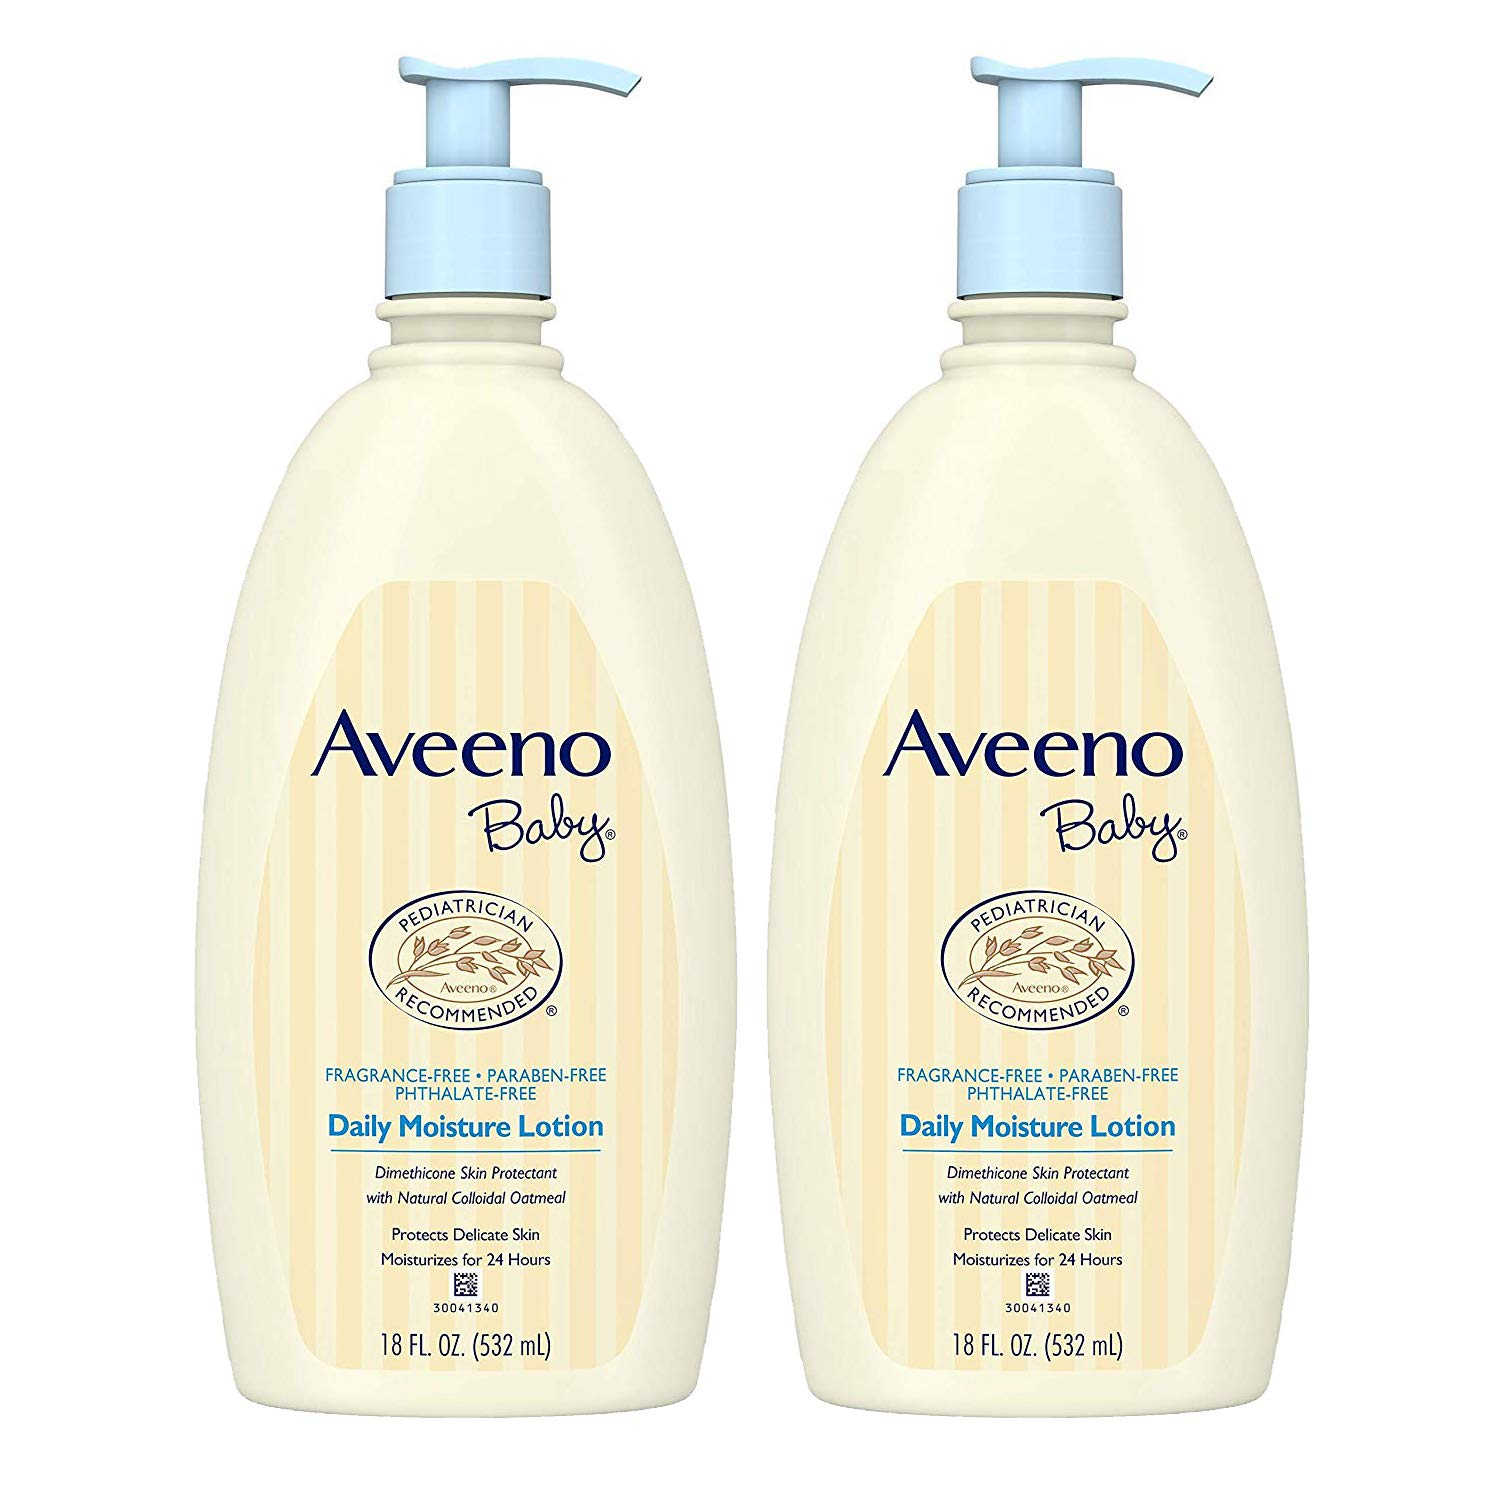 Daily Moisture Lotion with Natural Colloidal Oatmeal & Dimethicone, Fragrance-Free, 18 fl. Oz (2 Pack) by Aveeno Baby